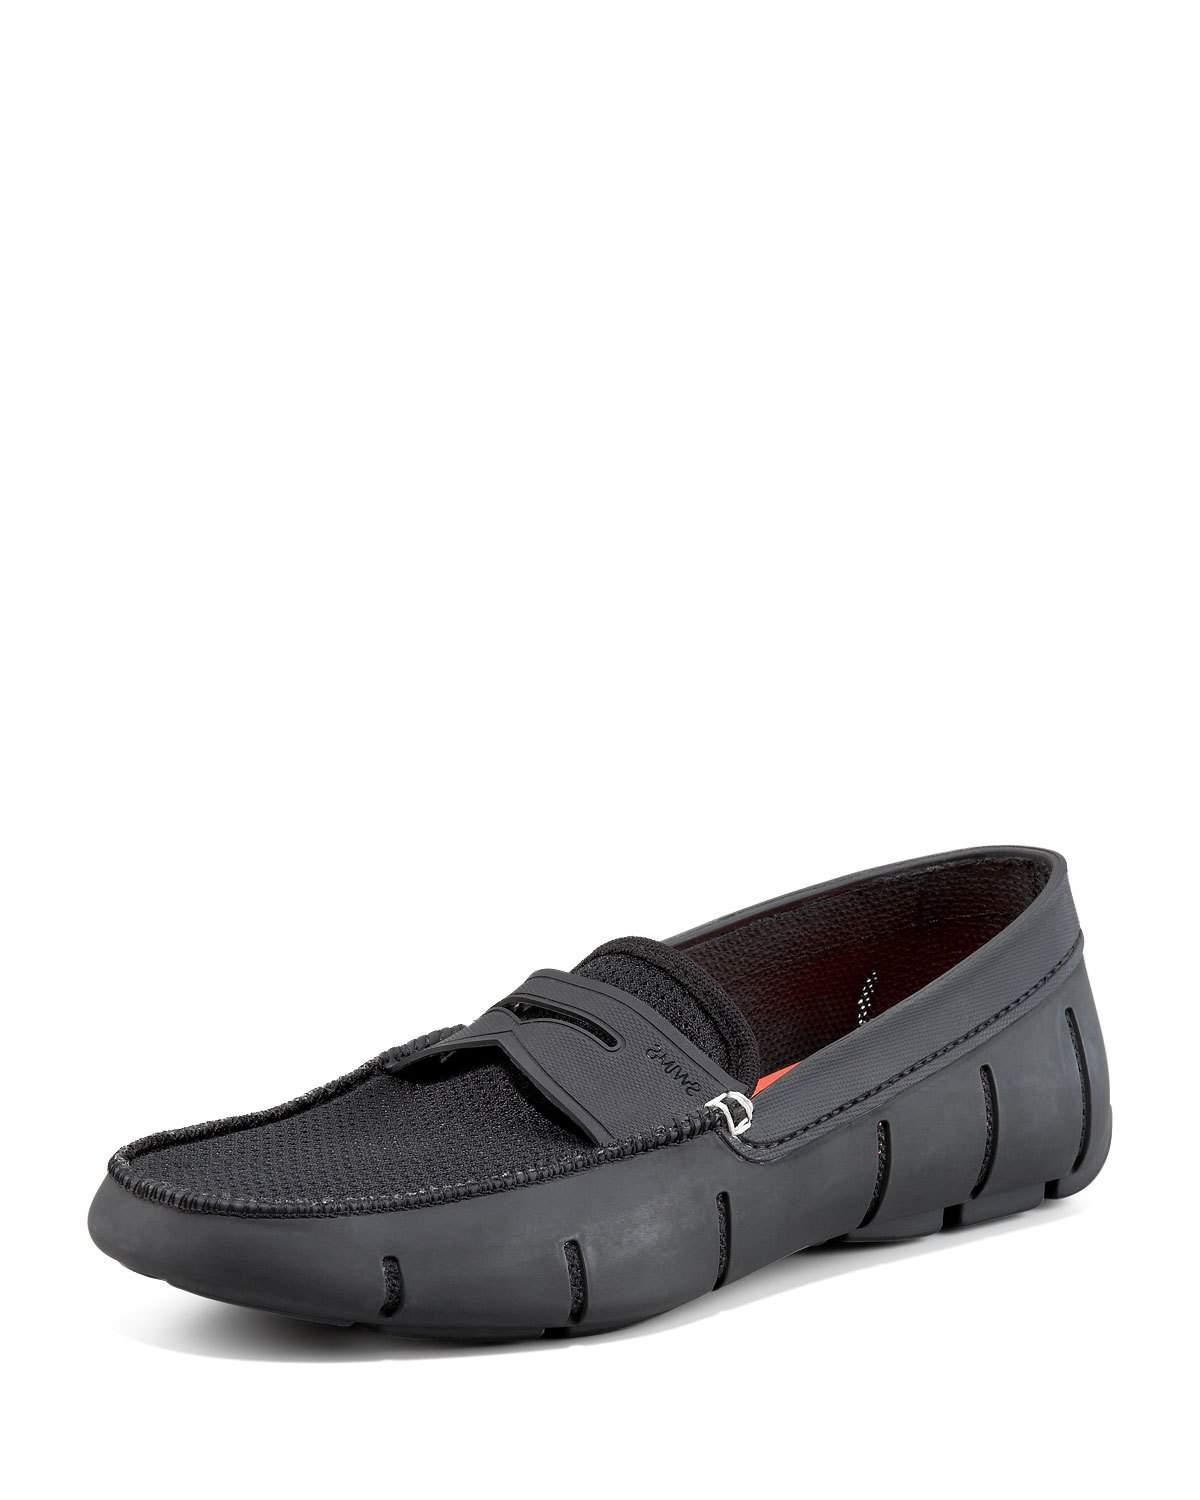 Shop mens loafer shoes at Neiman Marcus, where you will find free shipping on the latest in fashion from top designers.